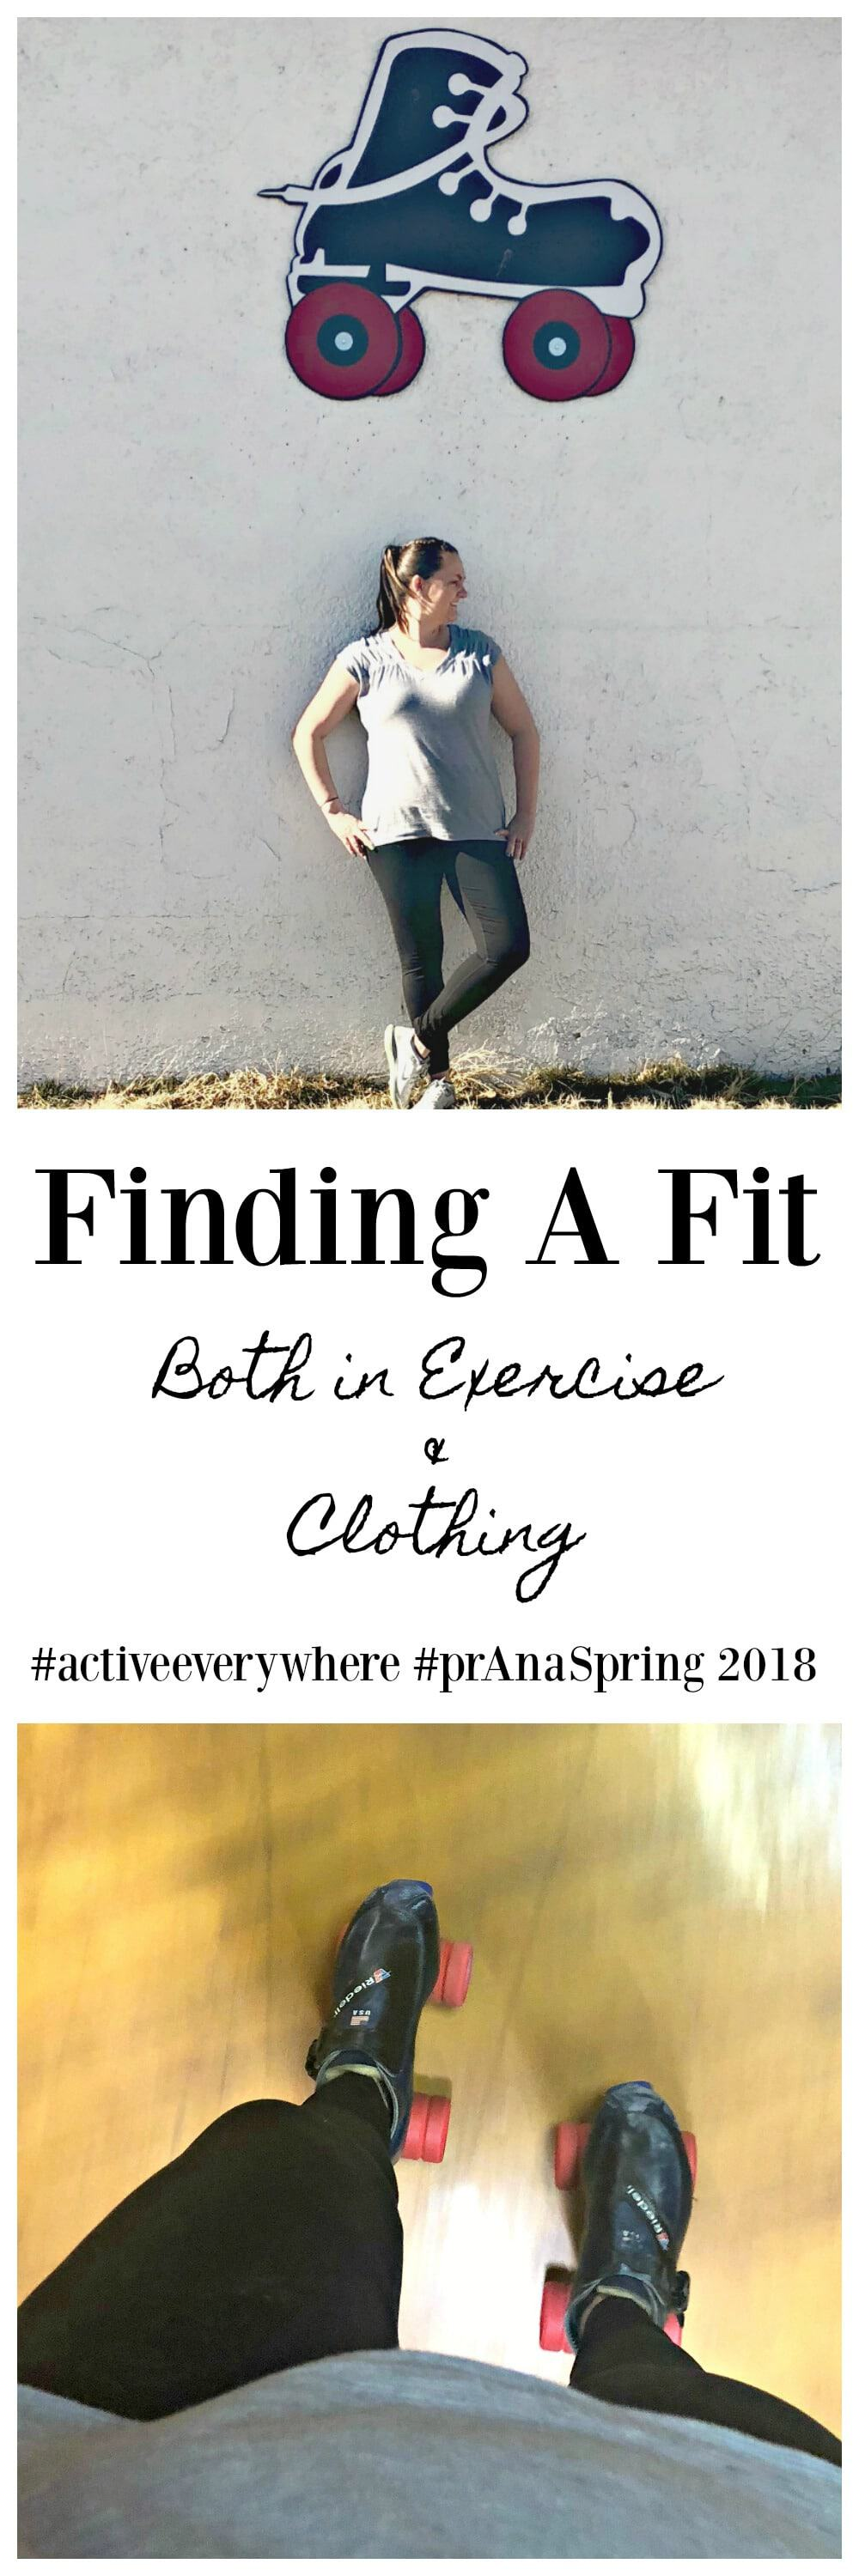 Fit clothing, exercise, roller skating cardio, roller skating attire, versatile workout clothing, non see through yoga pants, prAna discount code, prAna savings code 2018,